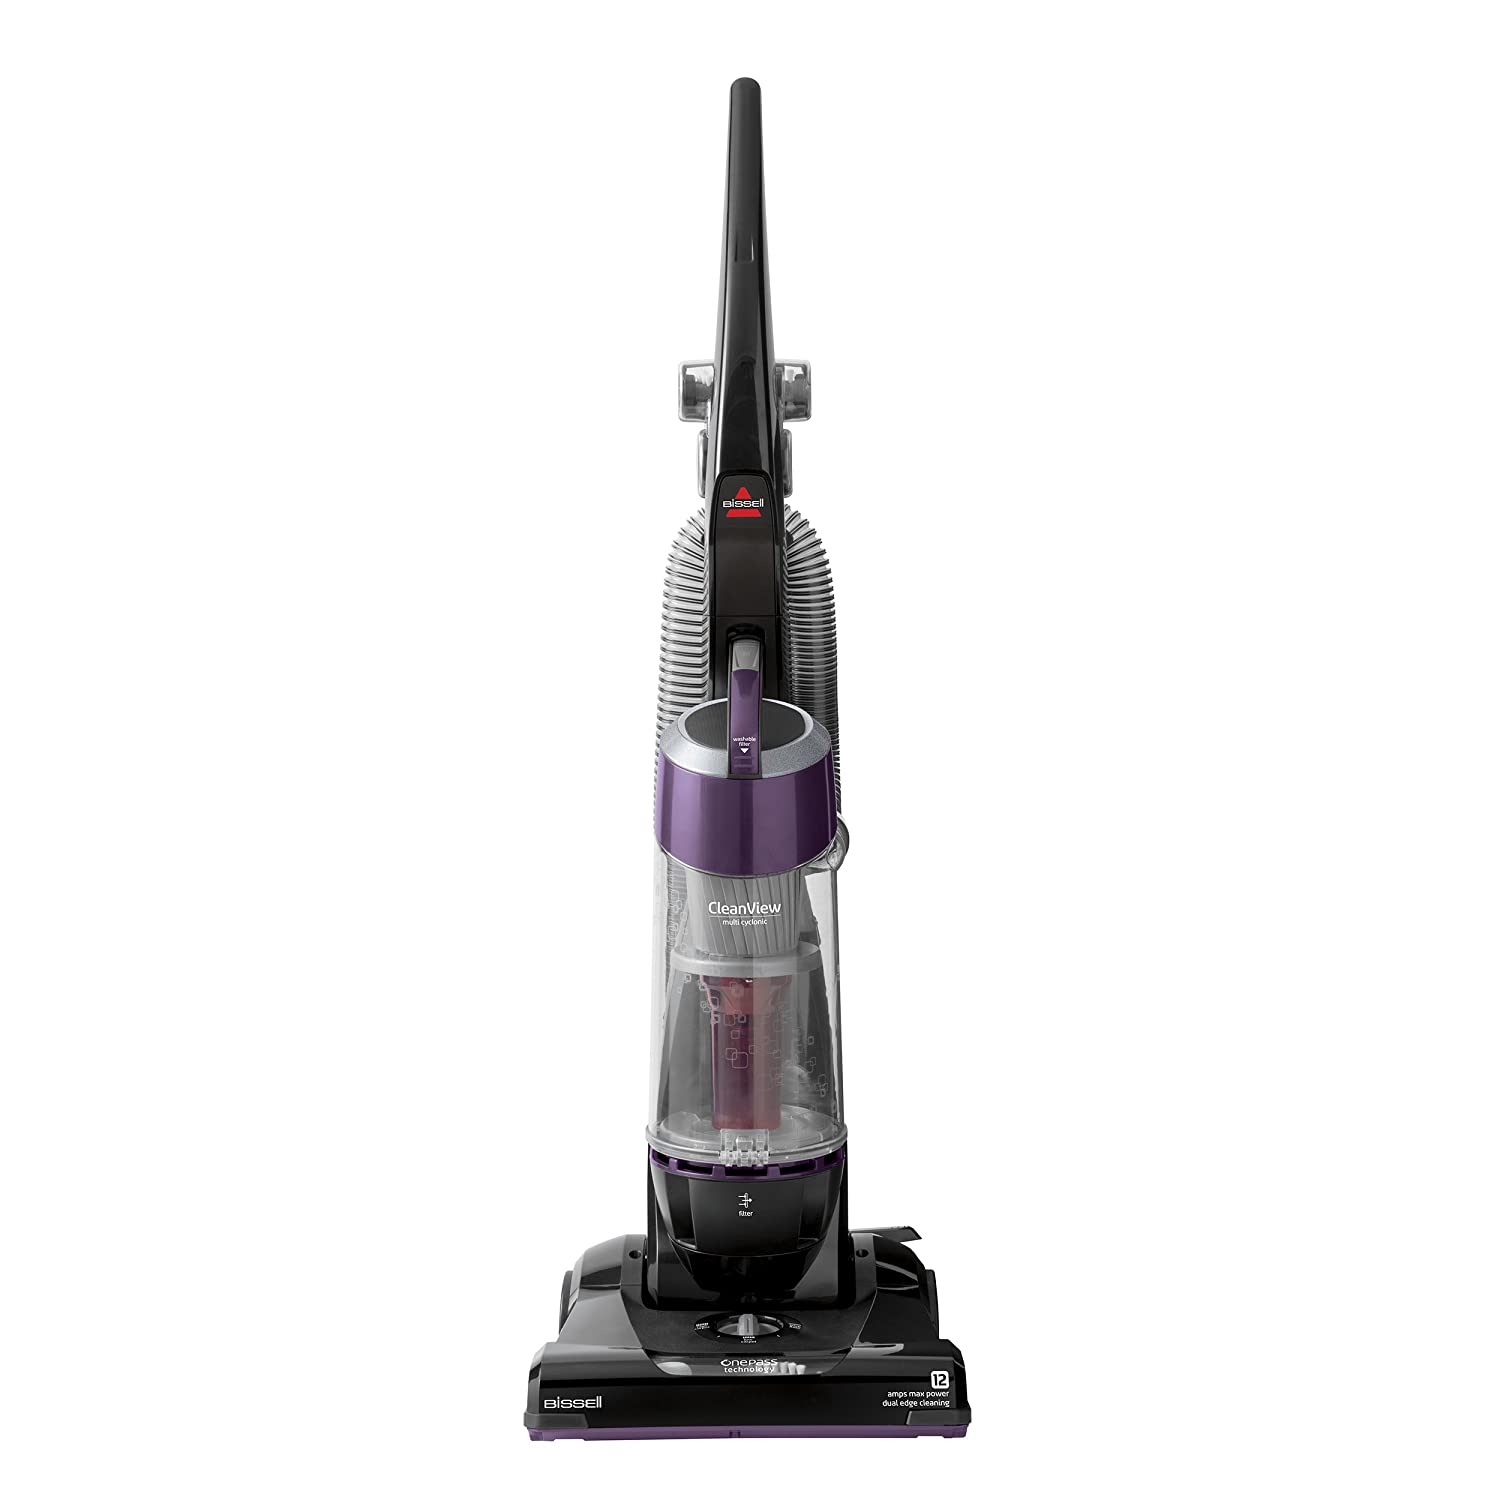 BISSELL 9595A – Best Upright Vacuum for Quick Cleaning